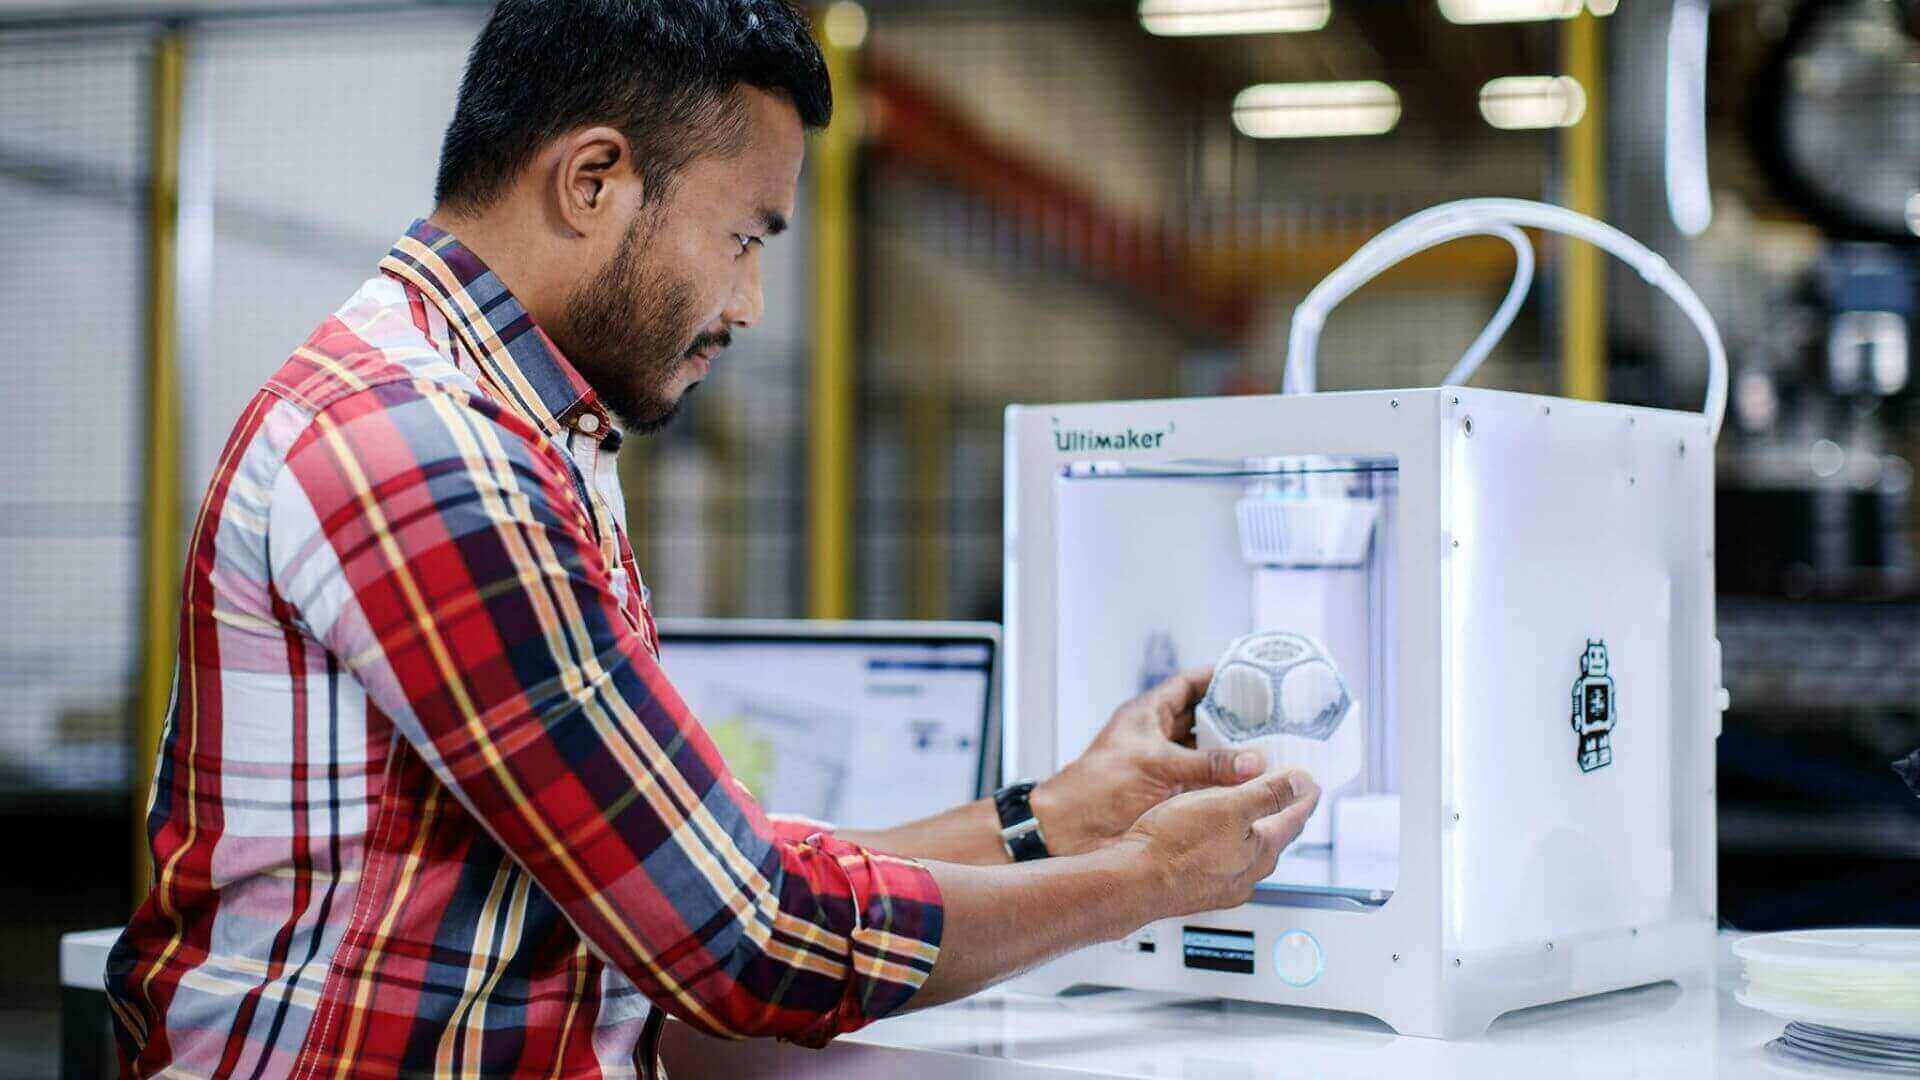 Ultimaker Files Defensive Patents, Abandoning Open Source? | All3DP